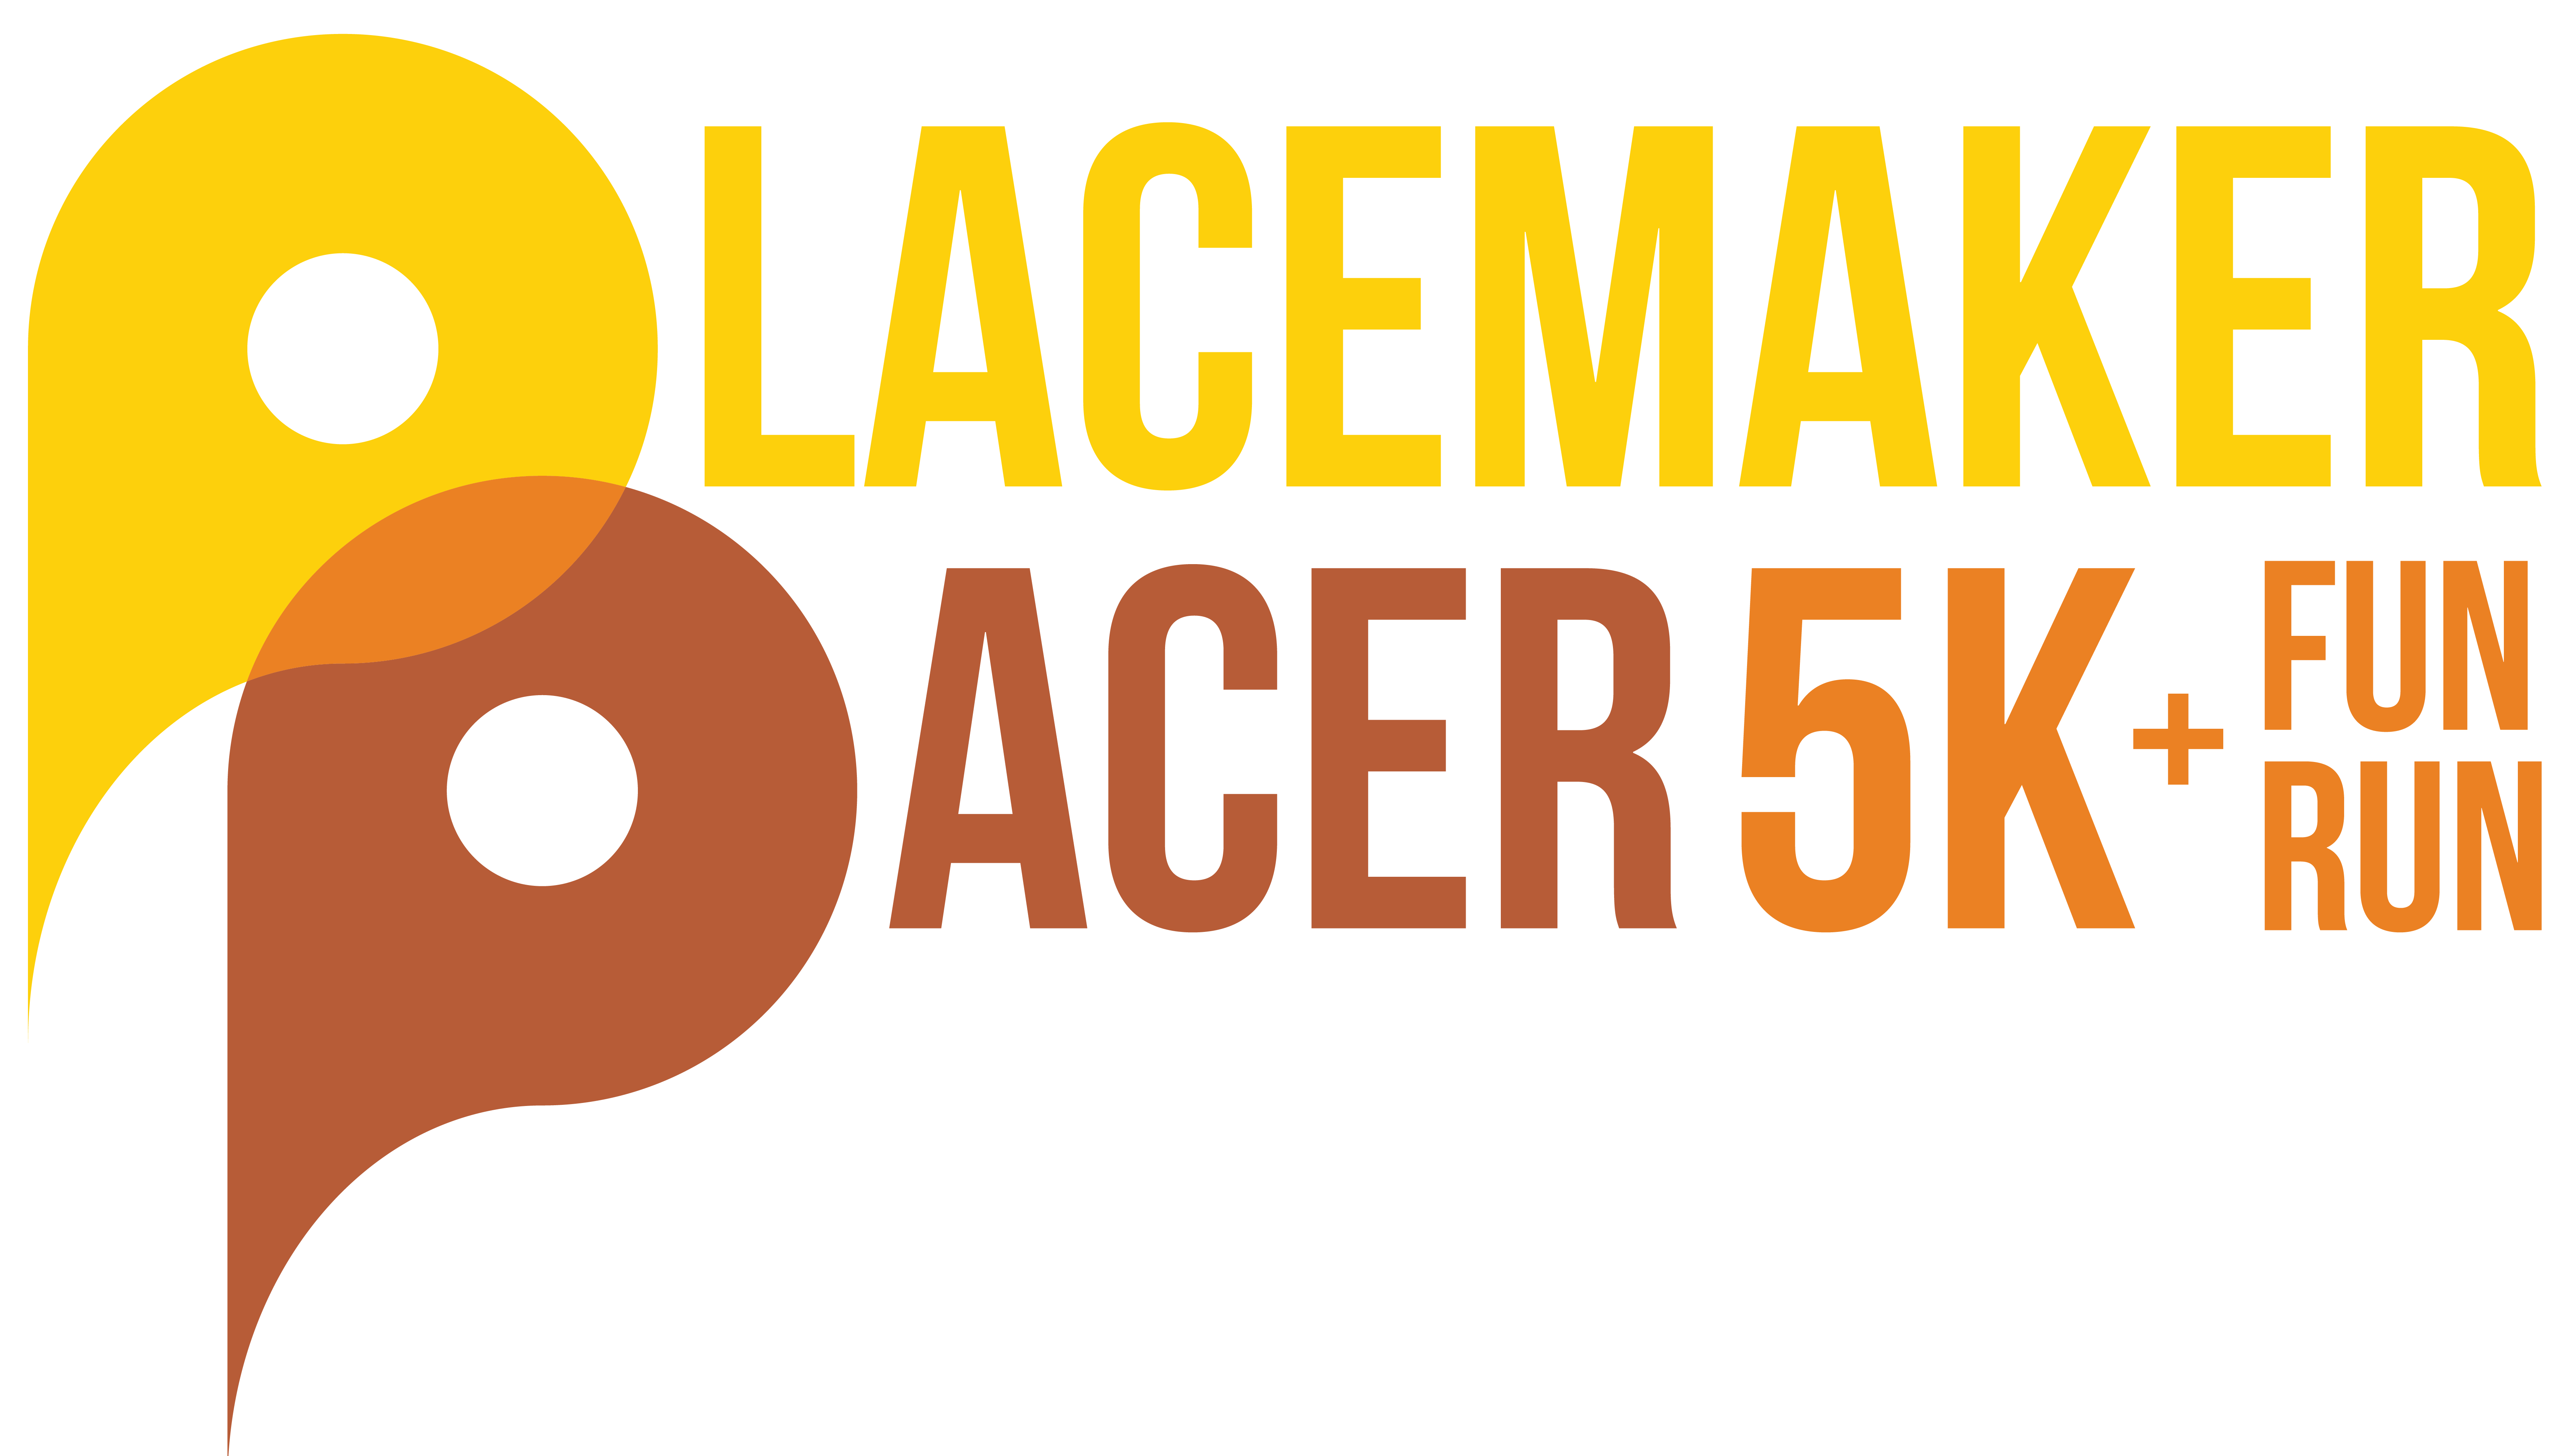 Placemaker Pacer